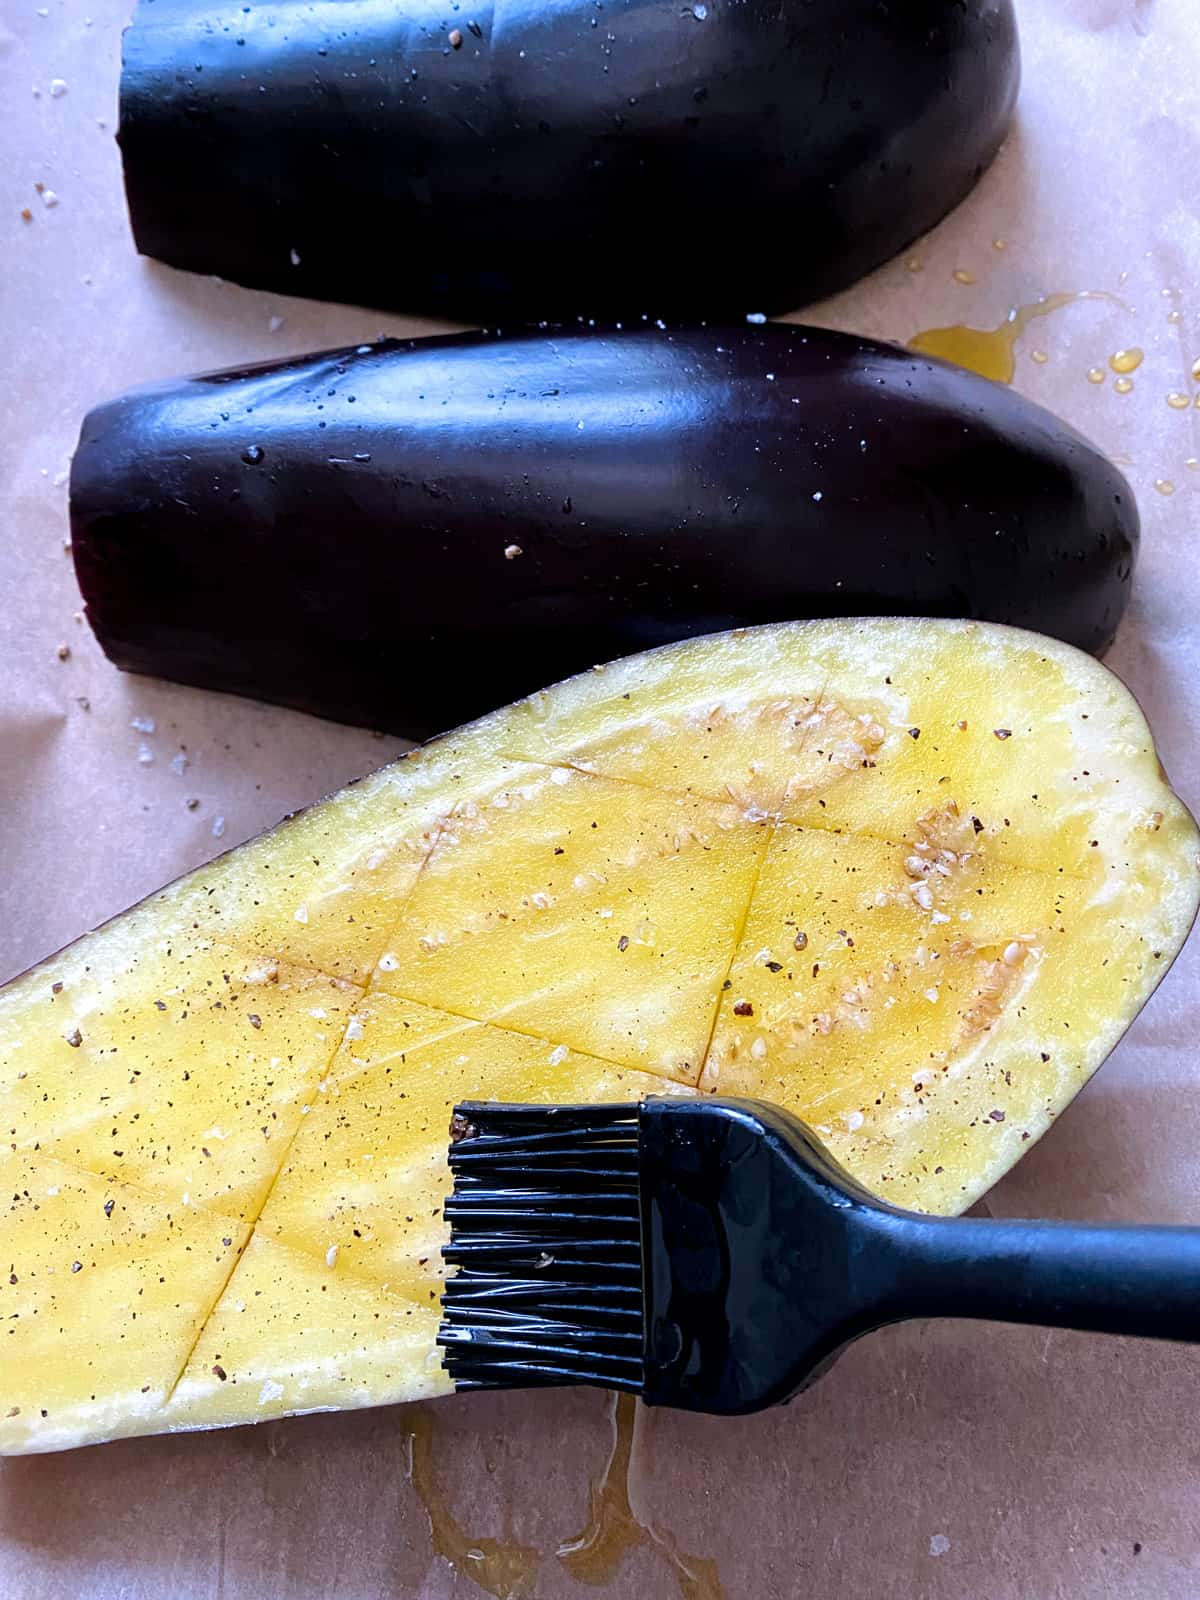 A half of an eggplant, being brushed with olive oil. Two halves at the back, upside down on parchment paper.